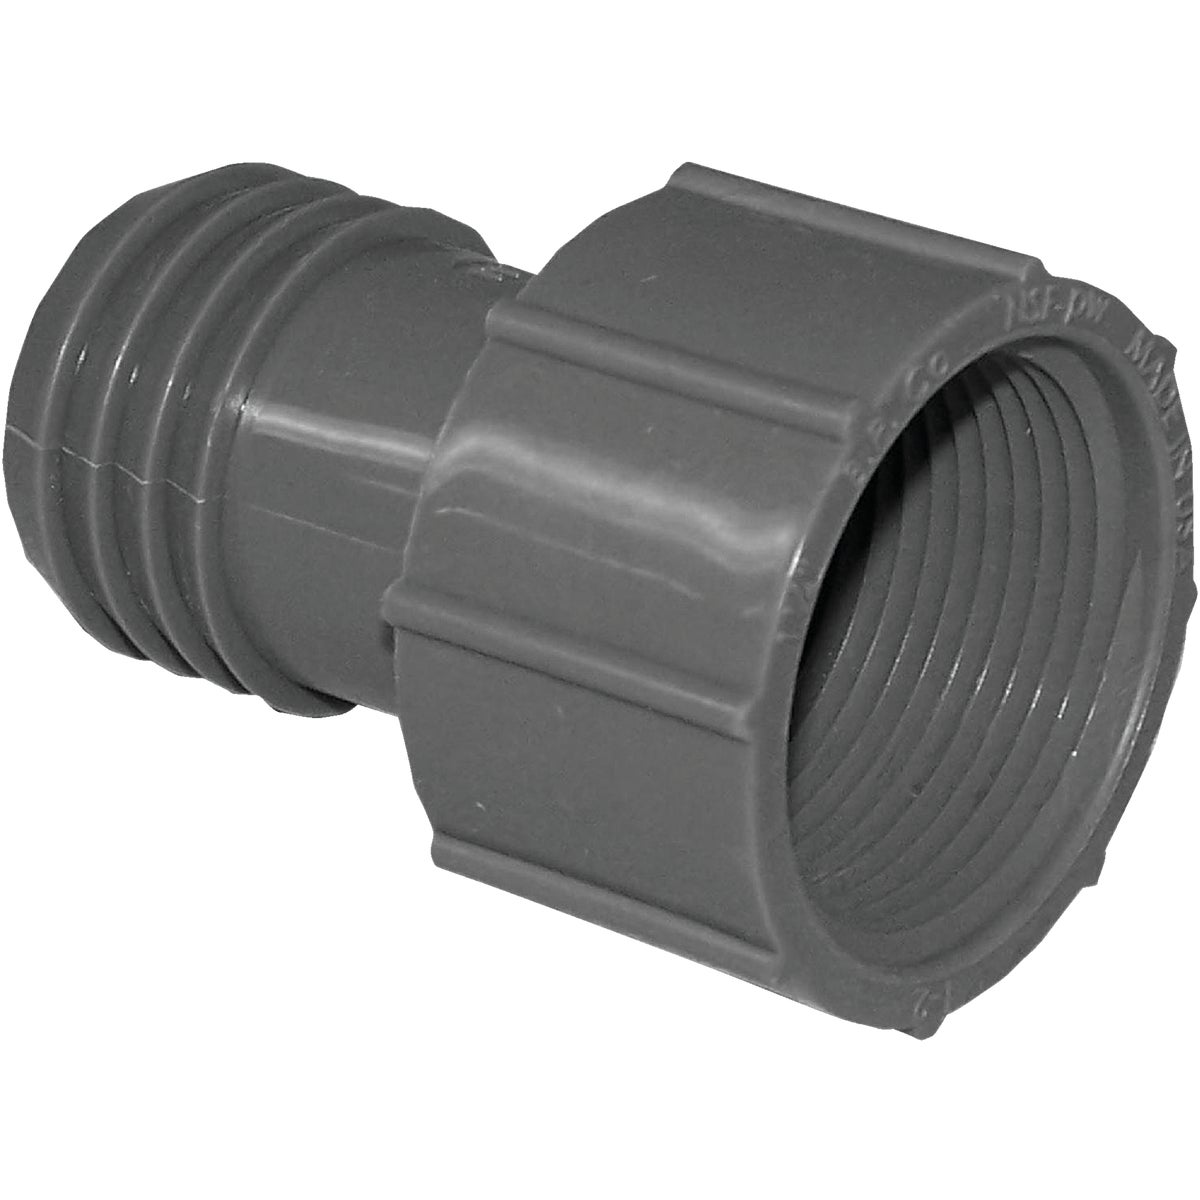 "1-1/4""POLY FIPXINS ADPTR"